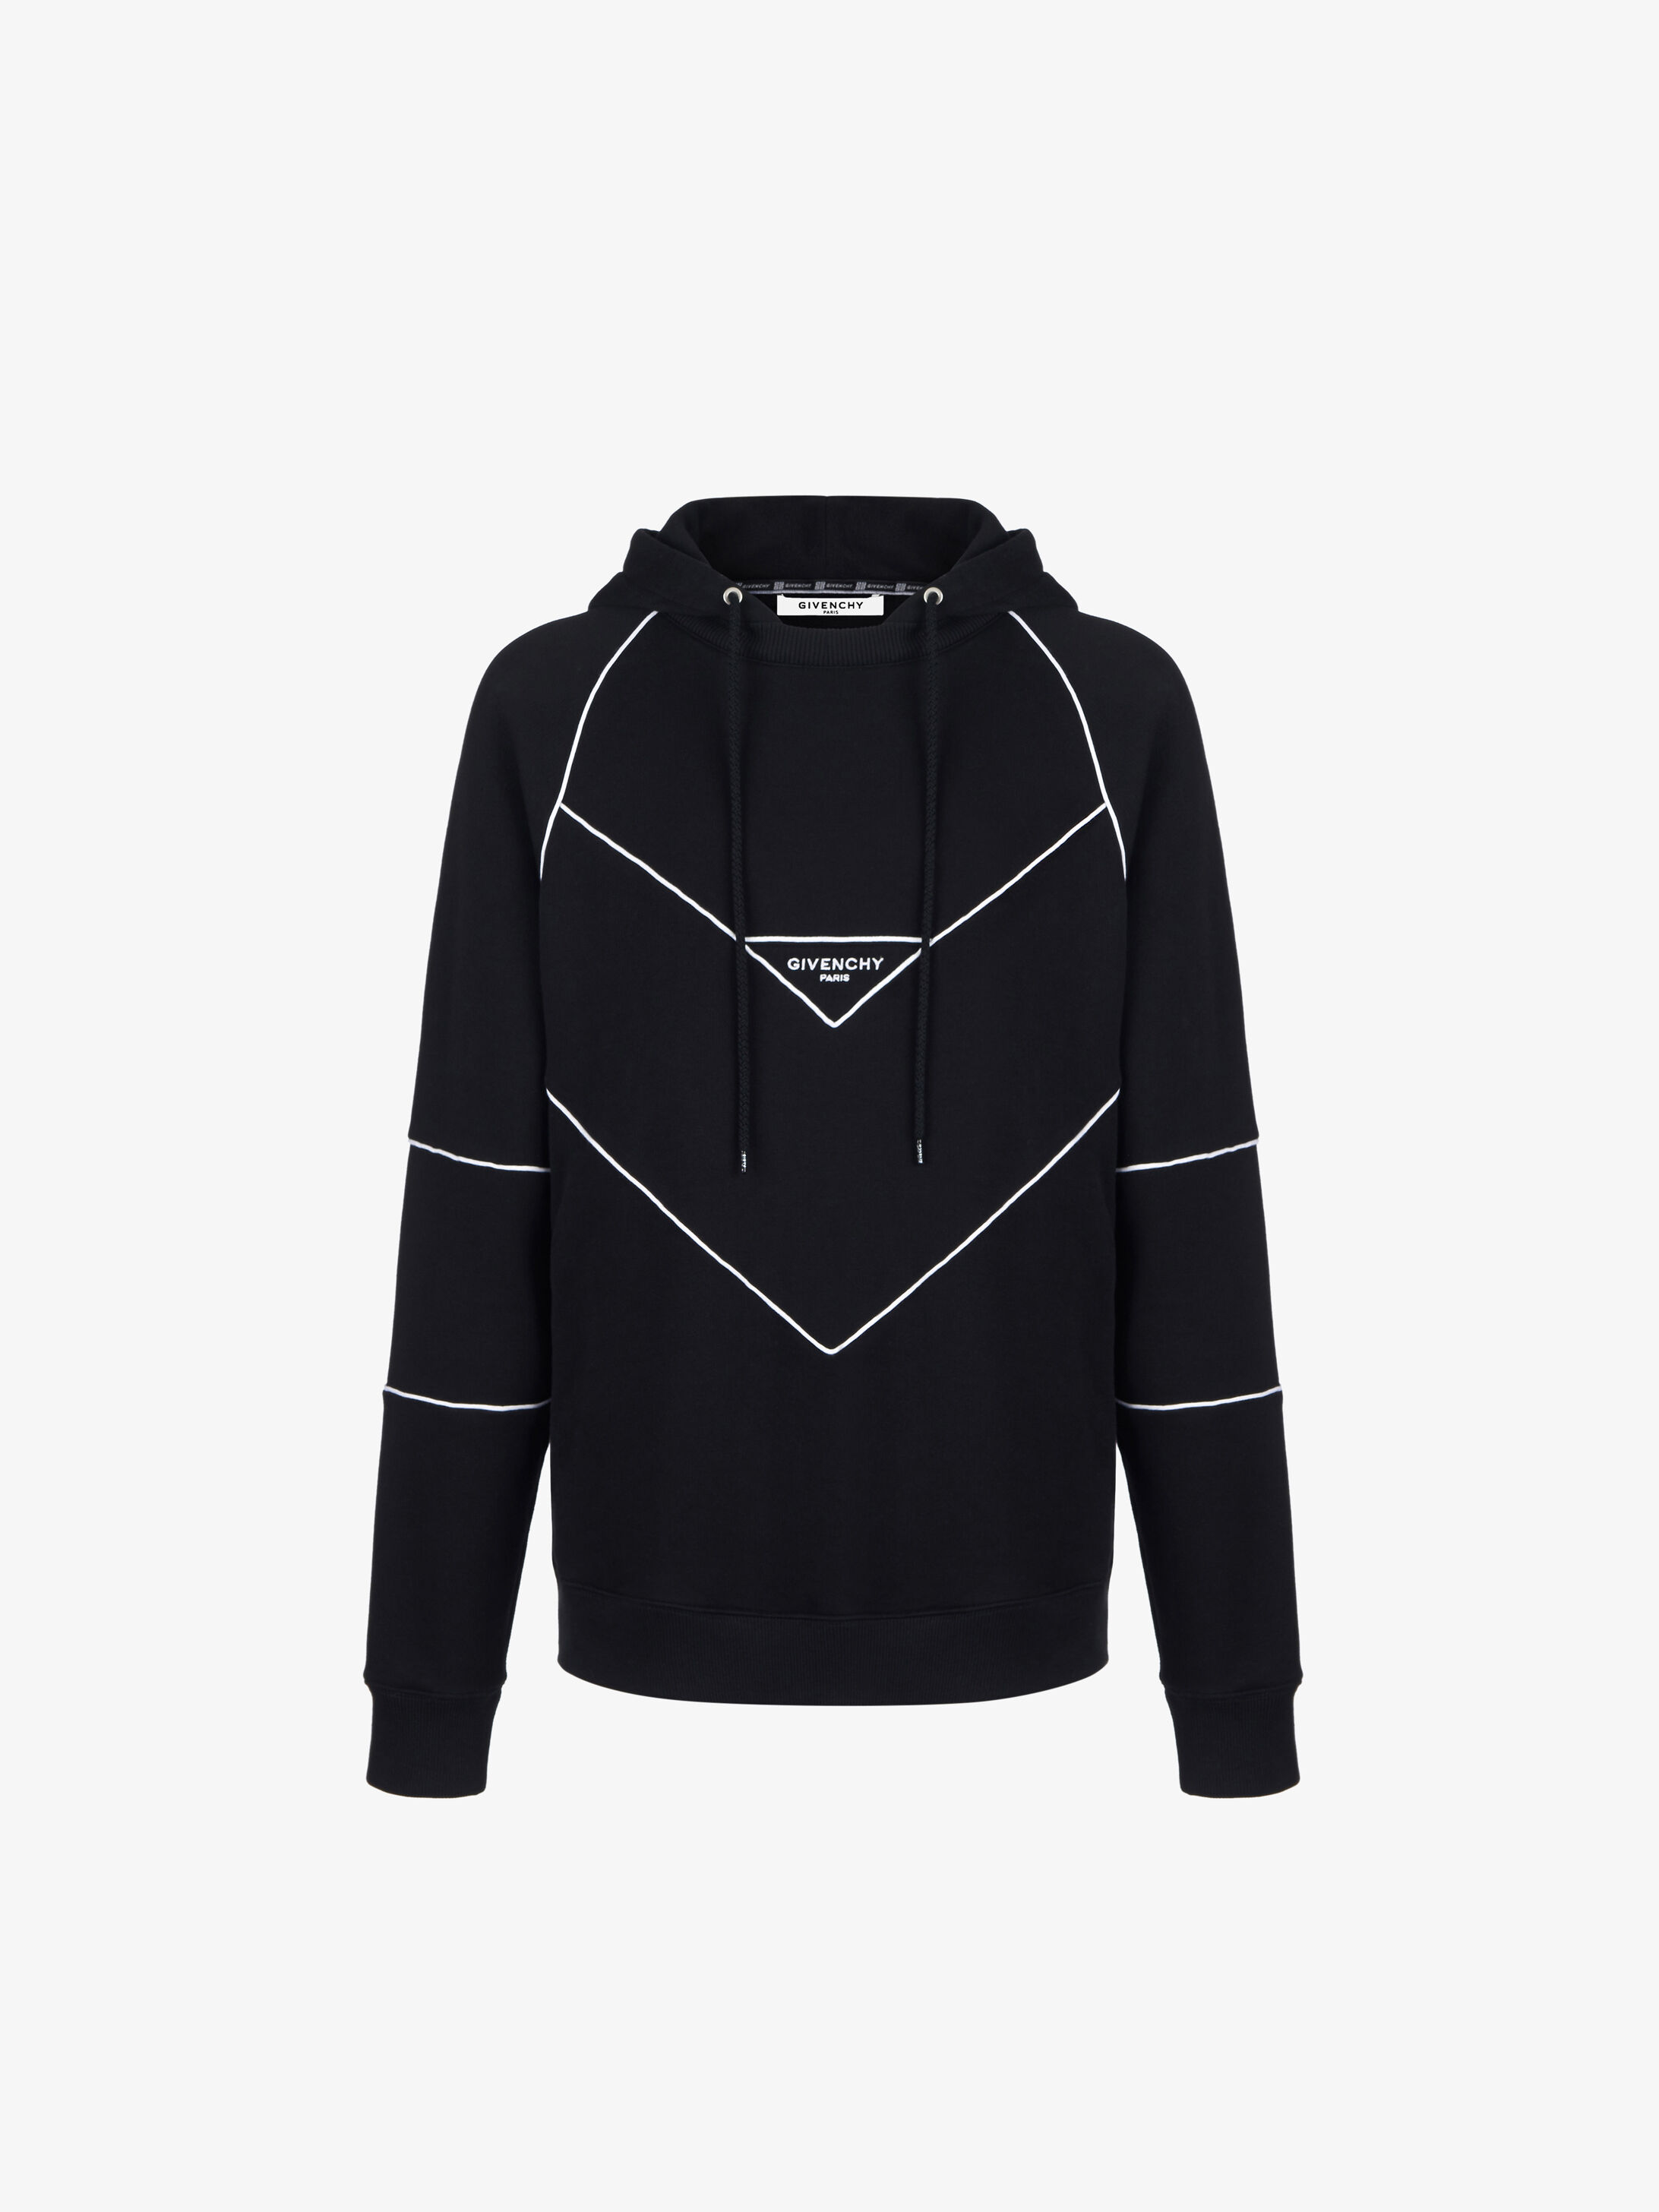 a00afcb0b3 Men's Sweatshirts collection by Givenchy.   GIVENCHY Paris